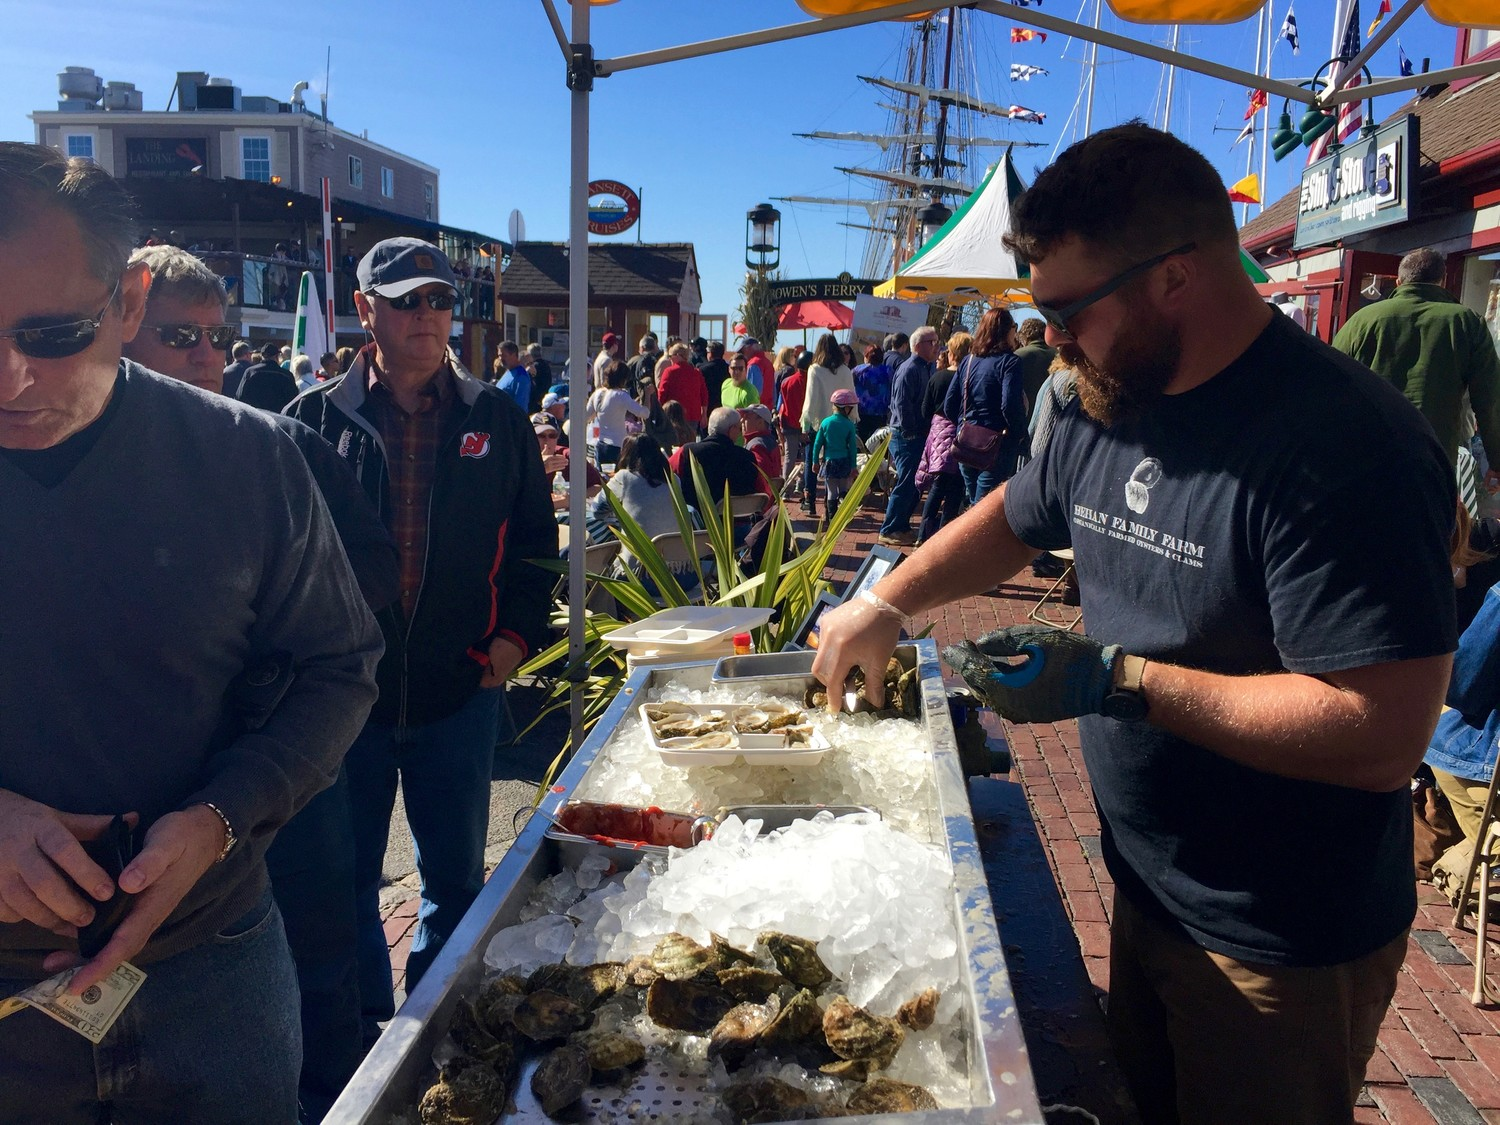 The Bowen's Wharf's 28th Annual Seafood Festival returns to Newport with a delicious array of local seafood, October 13-14